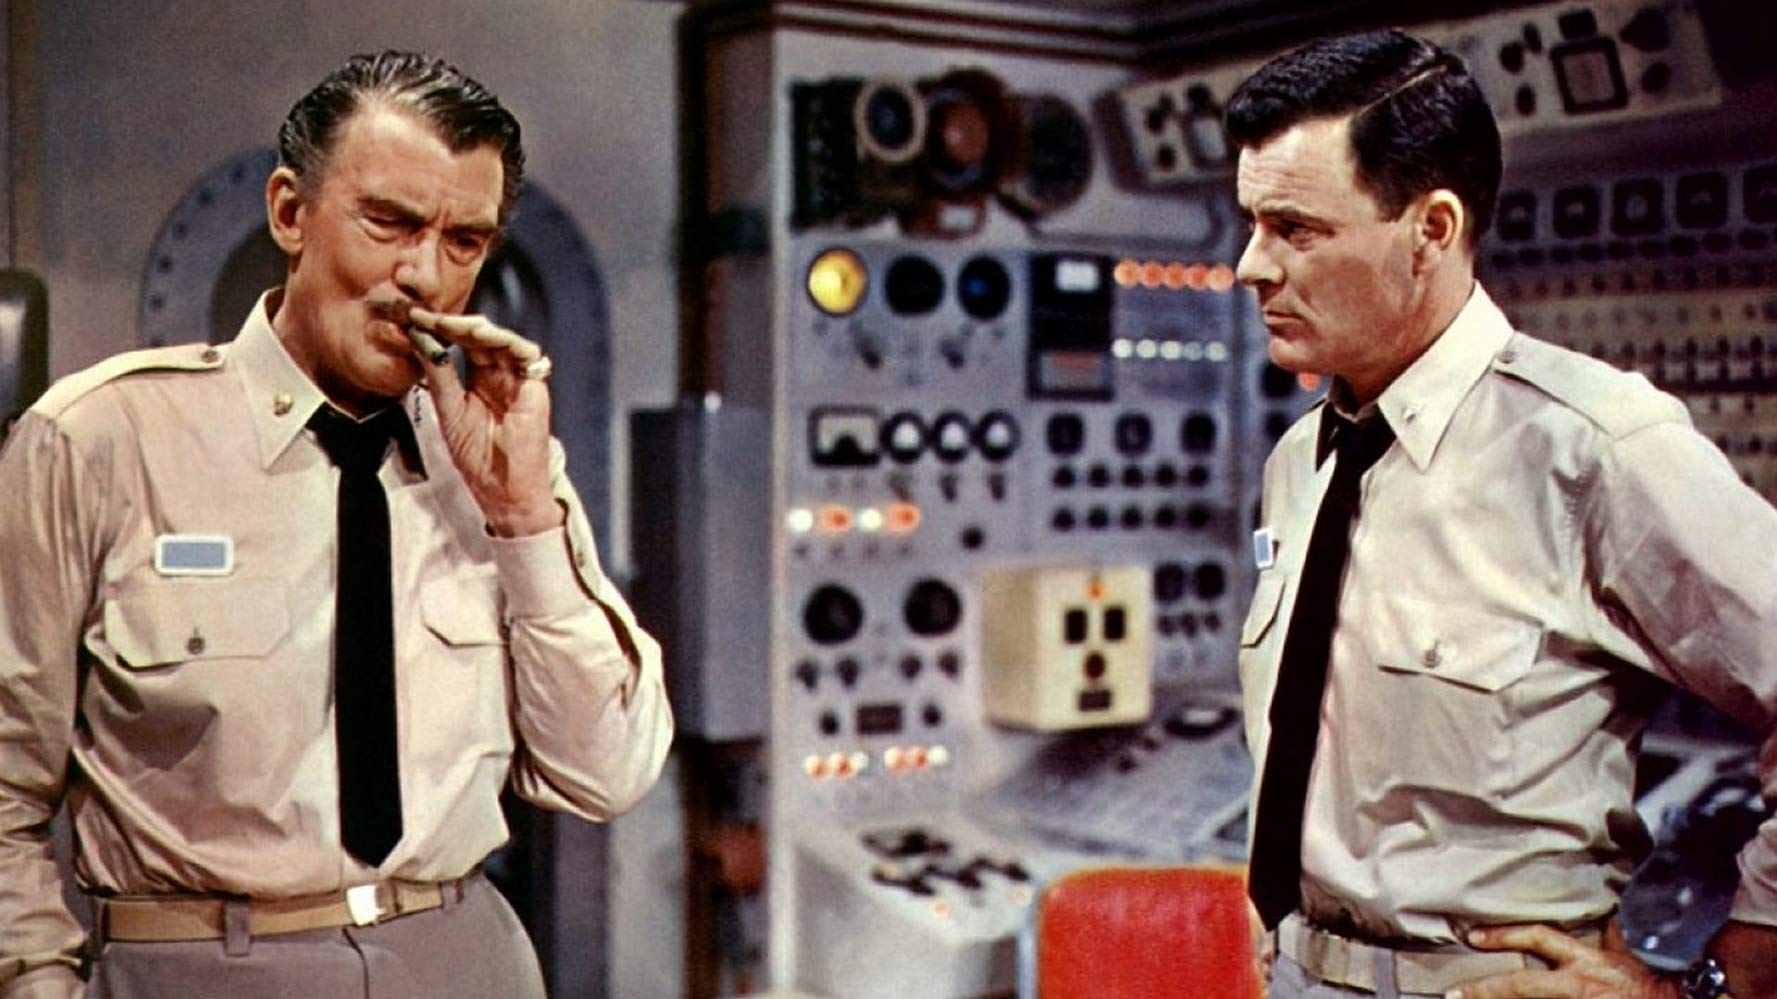 Admiral Harriman Nelson (Walter Pidgeon) and Captain Lee Crane (Robert Sterling) in Voyage to the Bottom of the Sea (1961)